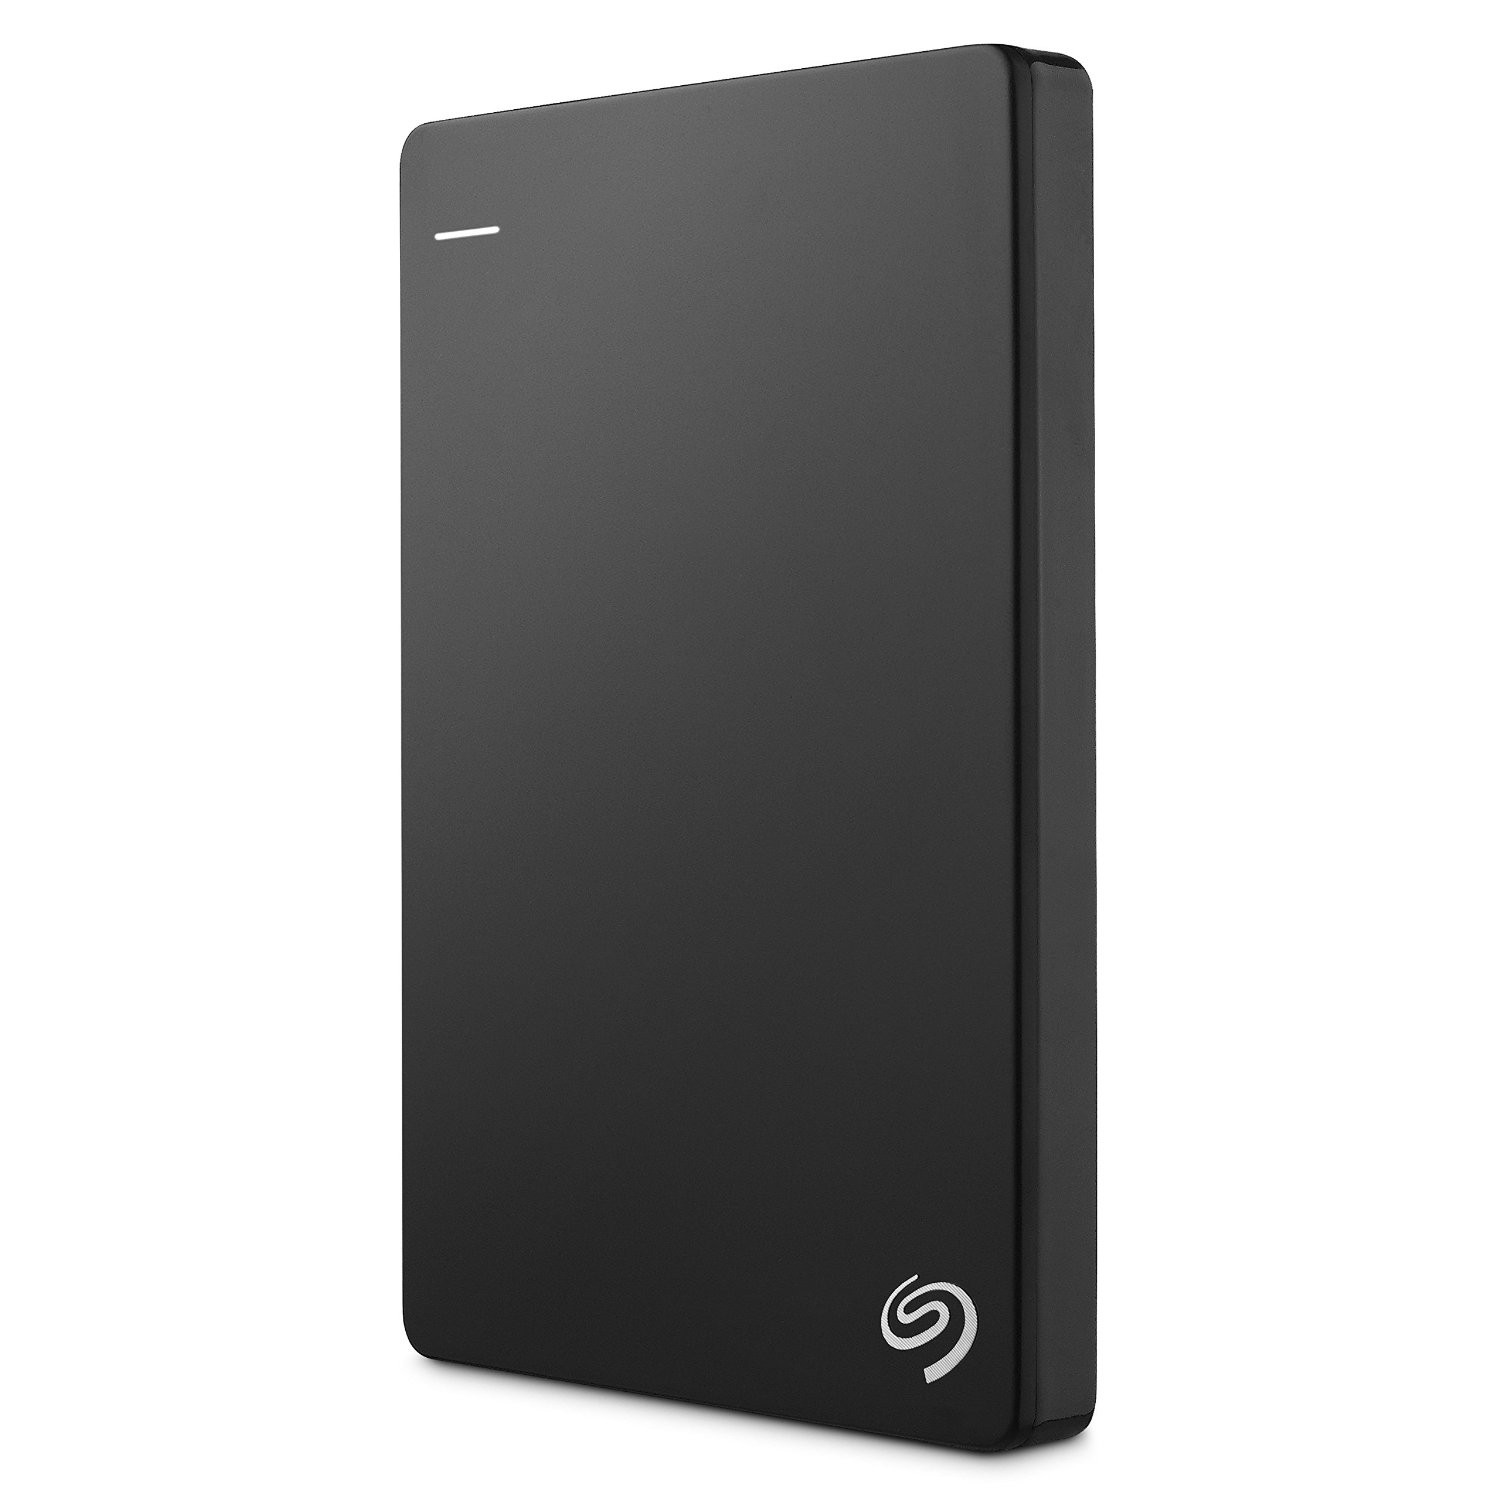 HDD Seagate Backup Plus Slim Portable Drive 1TB 2.5″